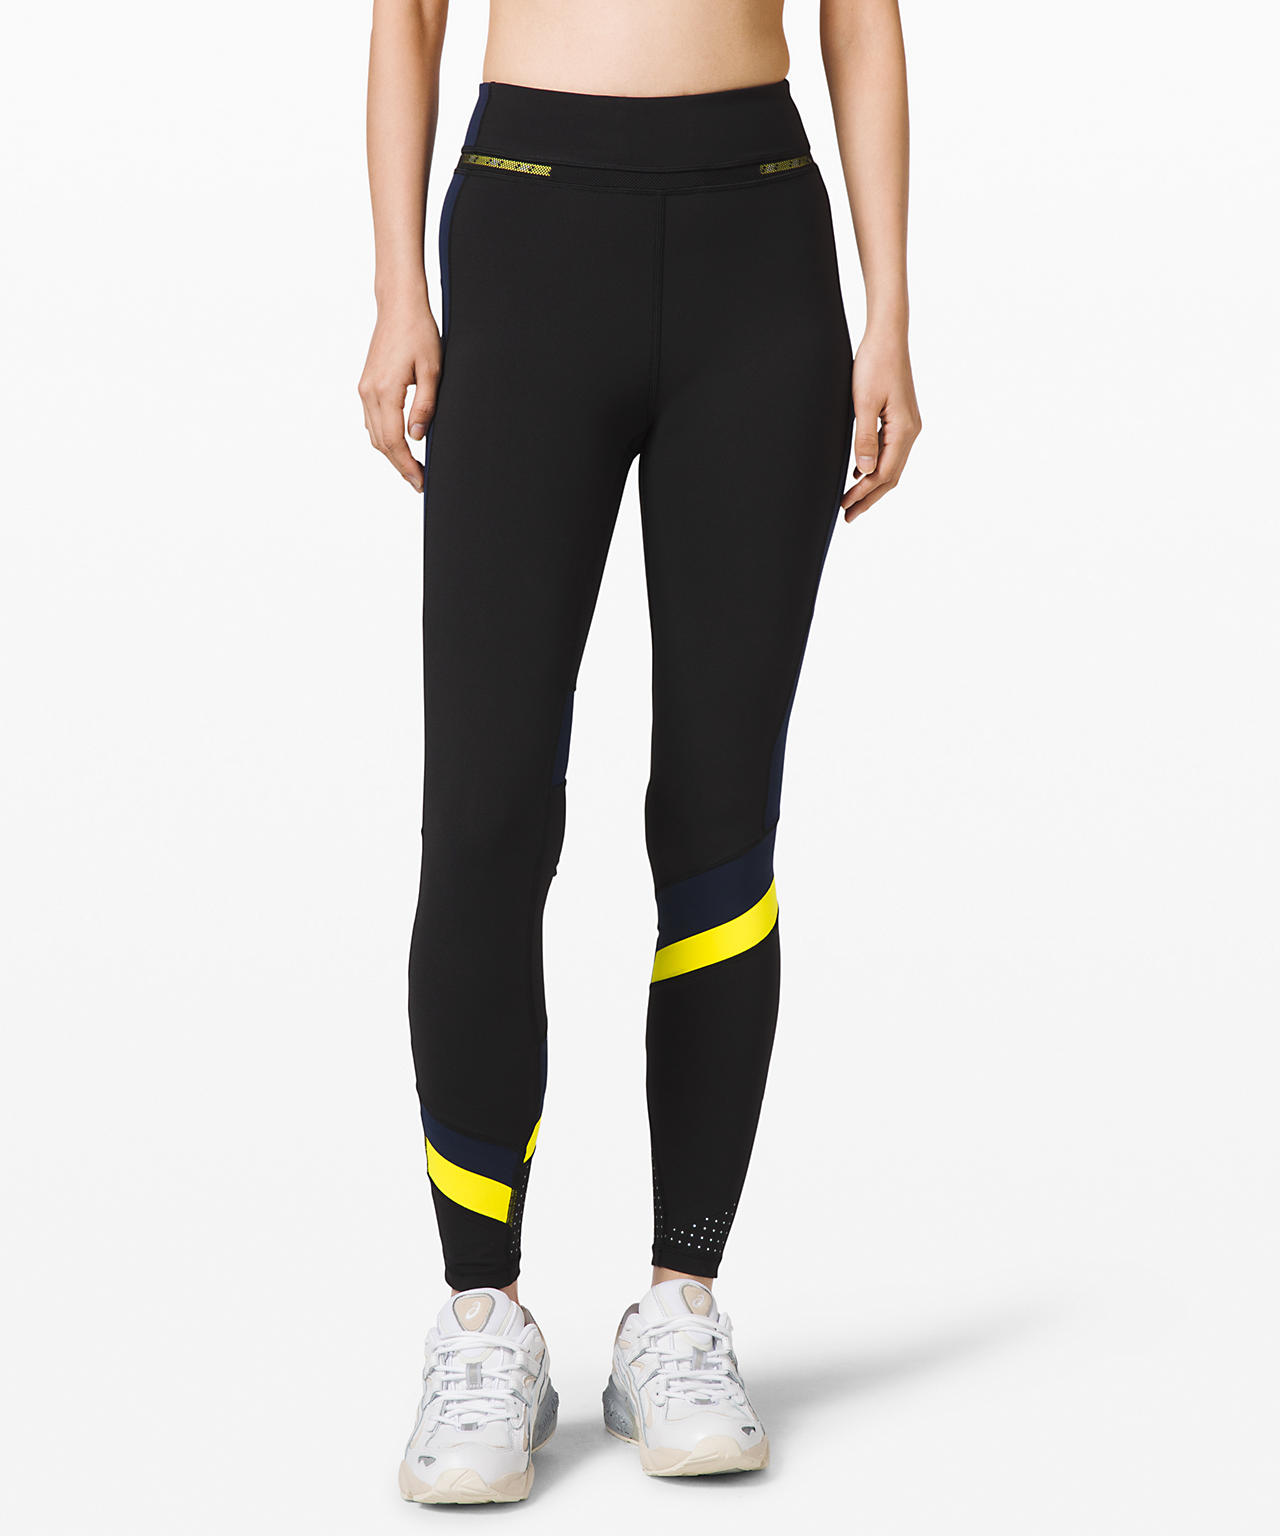 Break New Ground Tight lululemon x Roksanda